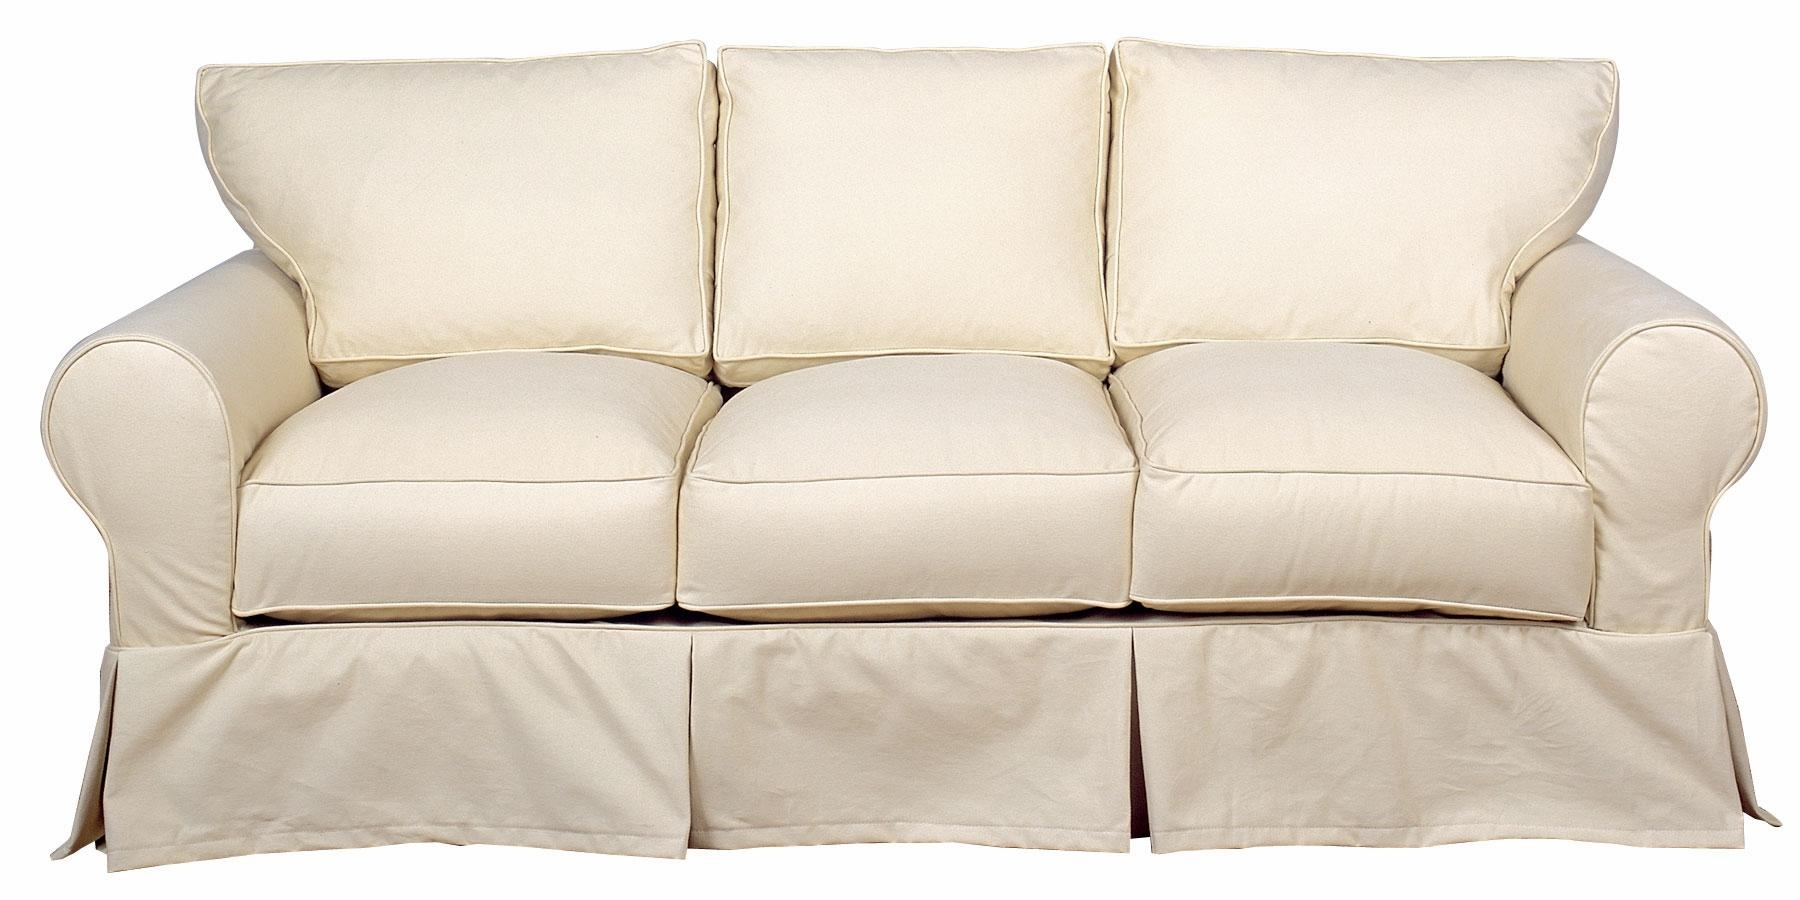 Slipcover 3 Cushion Queen Sleeper Sofa Within Slipcovers For Sleeper Sofas (View 5 of 20)